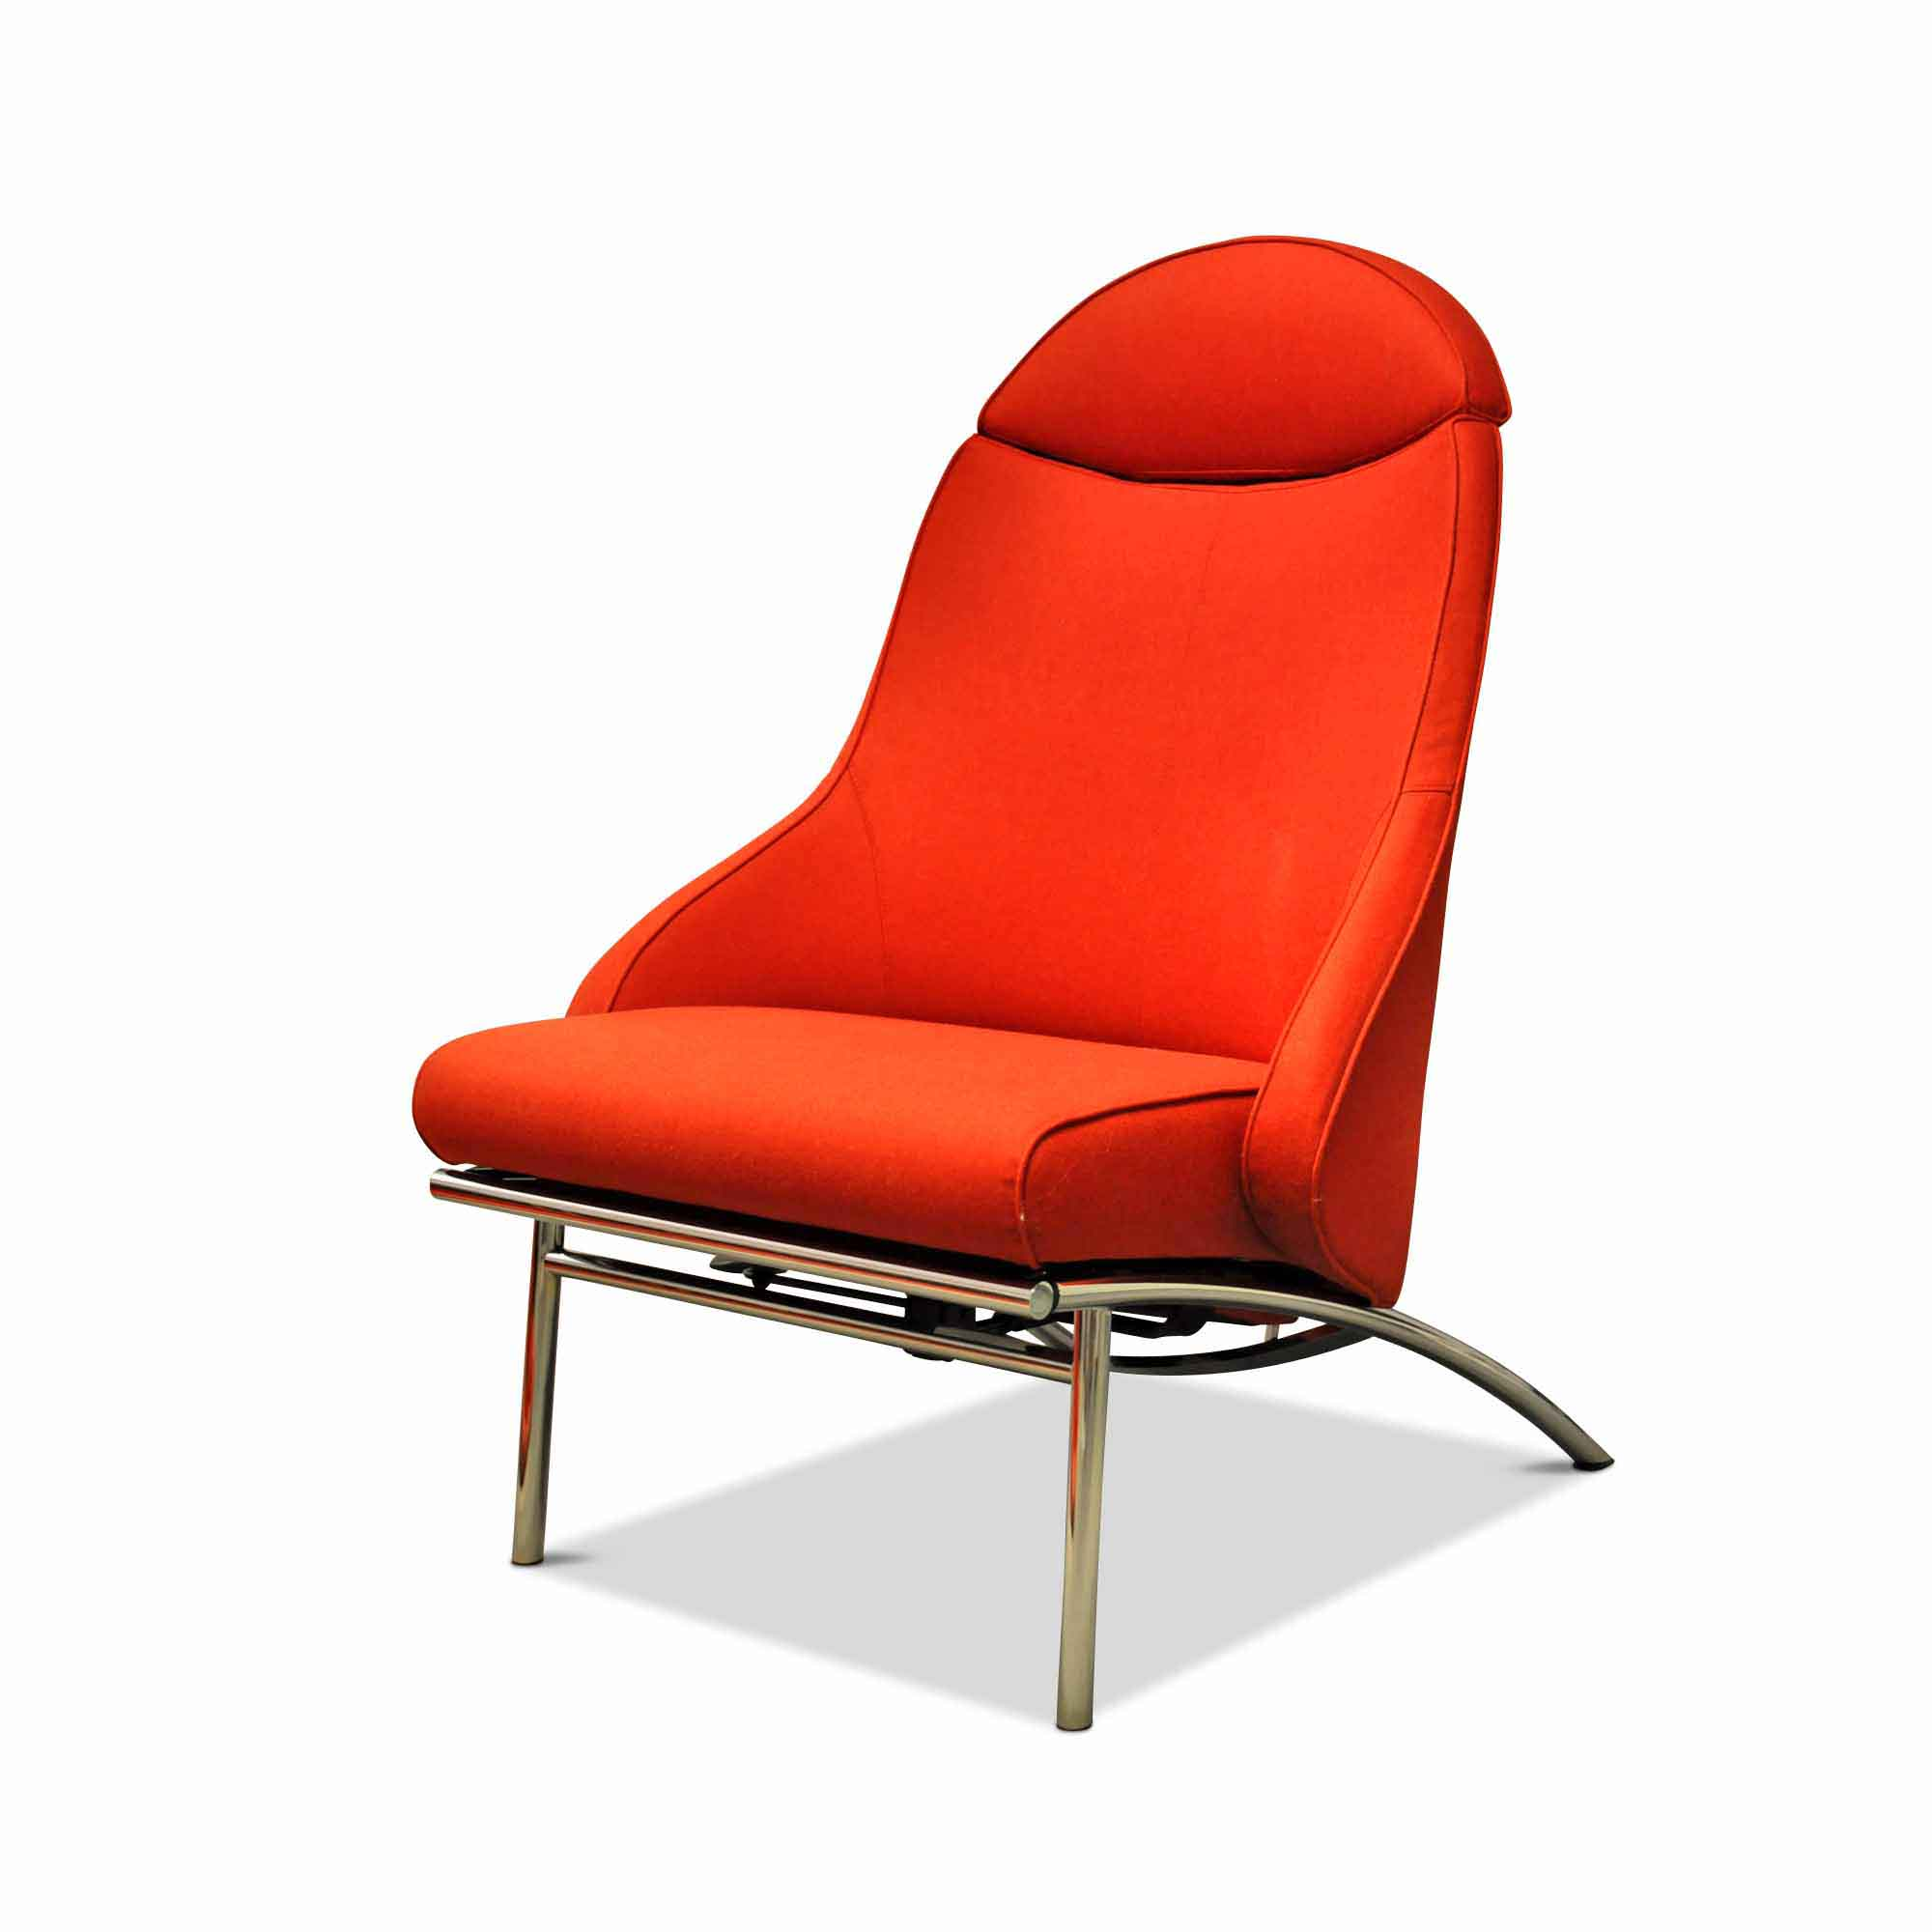 Ip Design Designer Sessel Rocky Stoff Stahl Chrom Orange Ebay